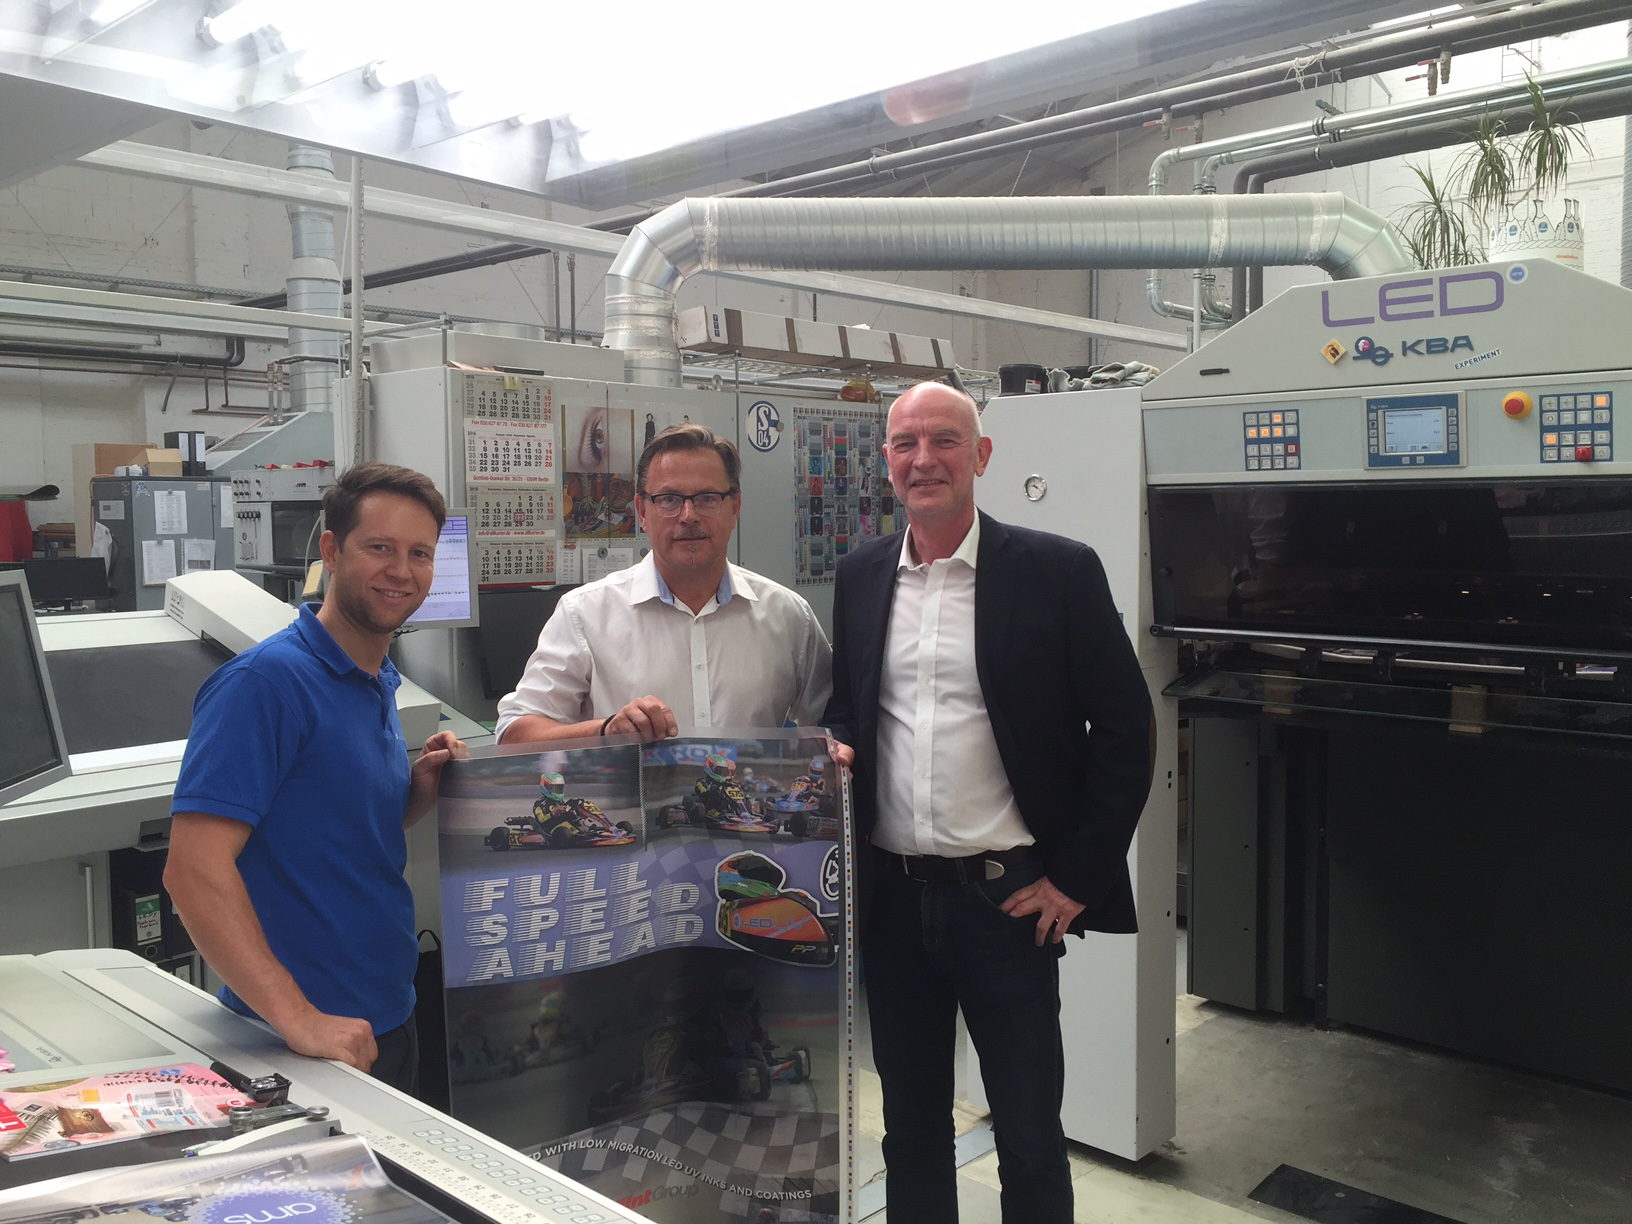 Flint Group's Richard Wilson (center) holds a poster printed with new LED-curable low-migration inks and coatings for in-mold labels while Königsdruck's Olaf König (right) and a press-team member join him. The new inks were cured using an XP9 LED module from AMS.